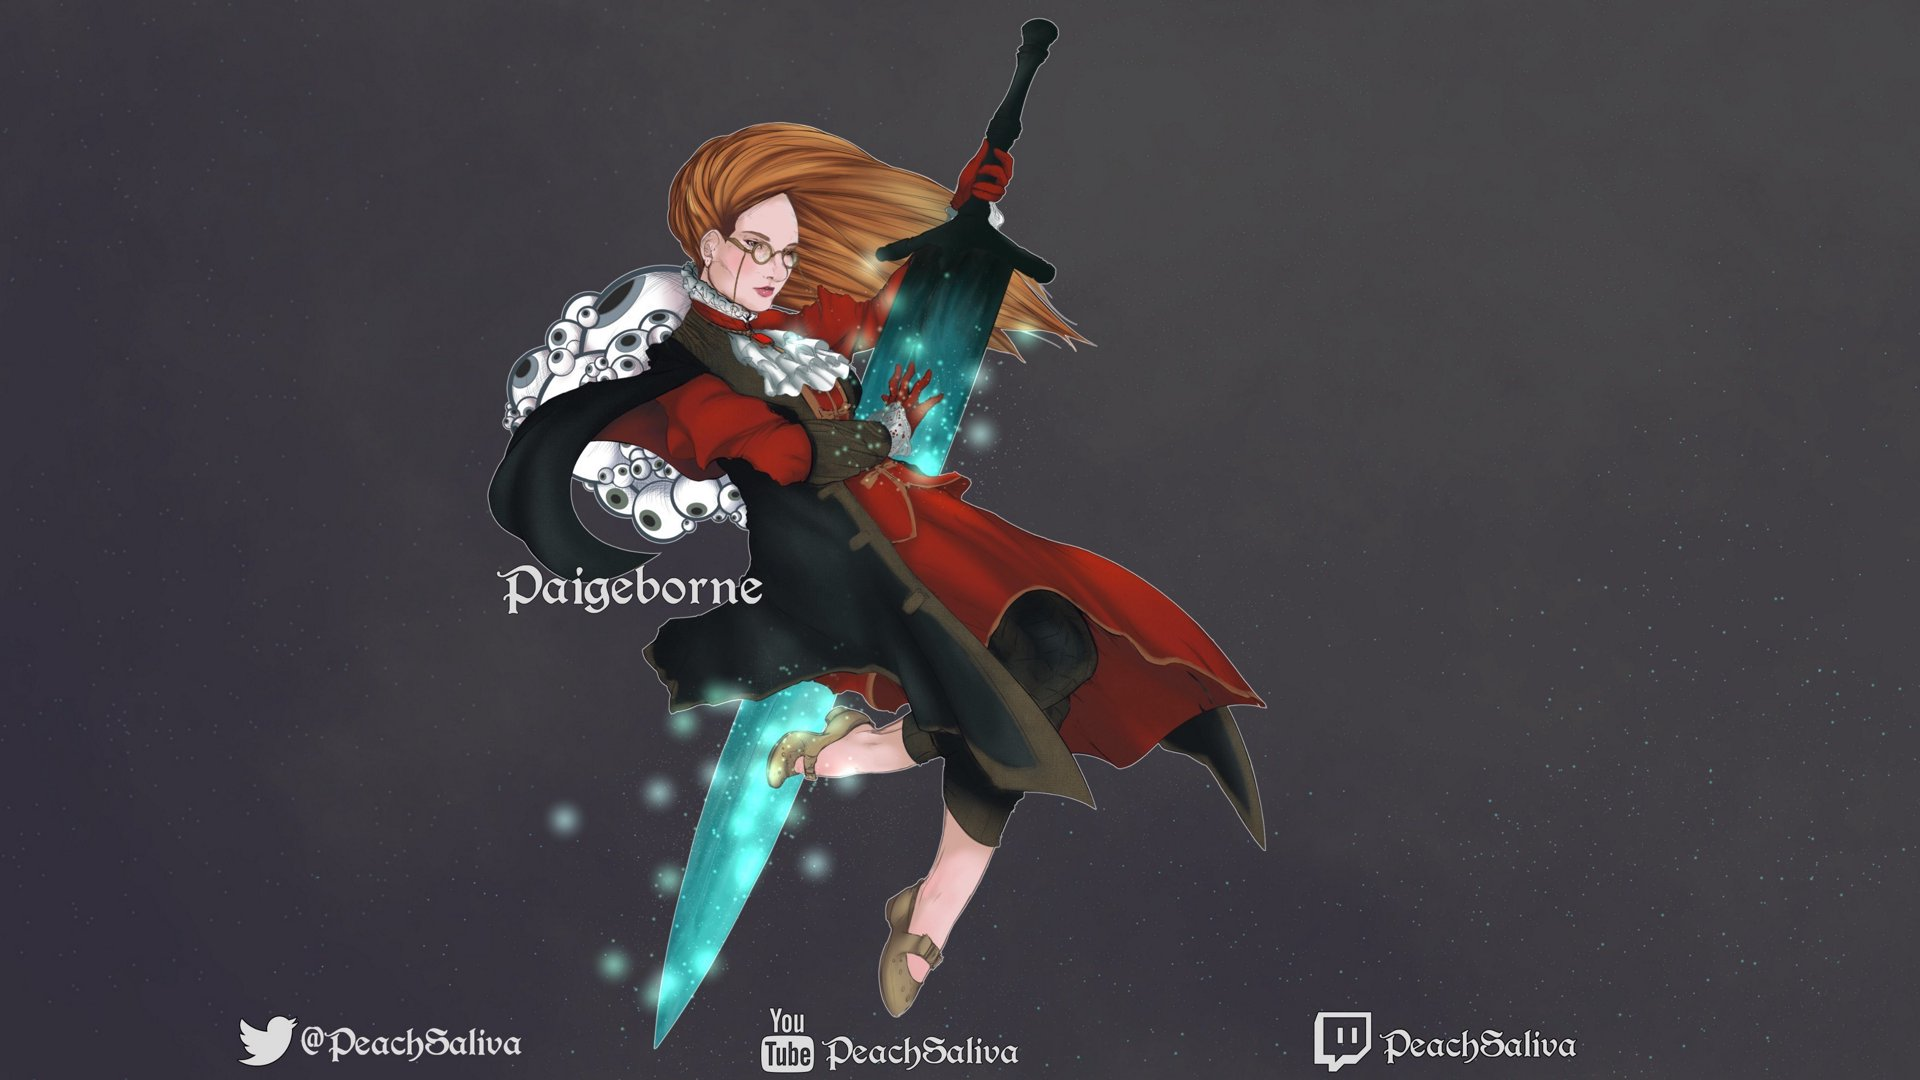 Peachsaliva Live Pikolive Twitch Game Entertainment Video